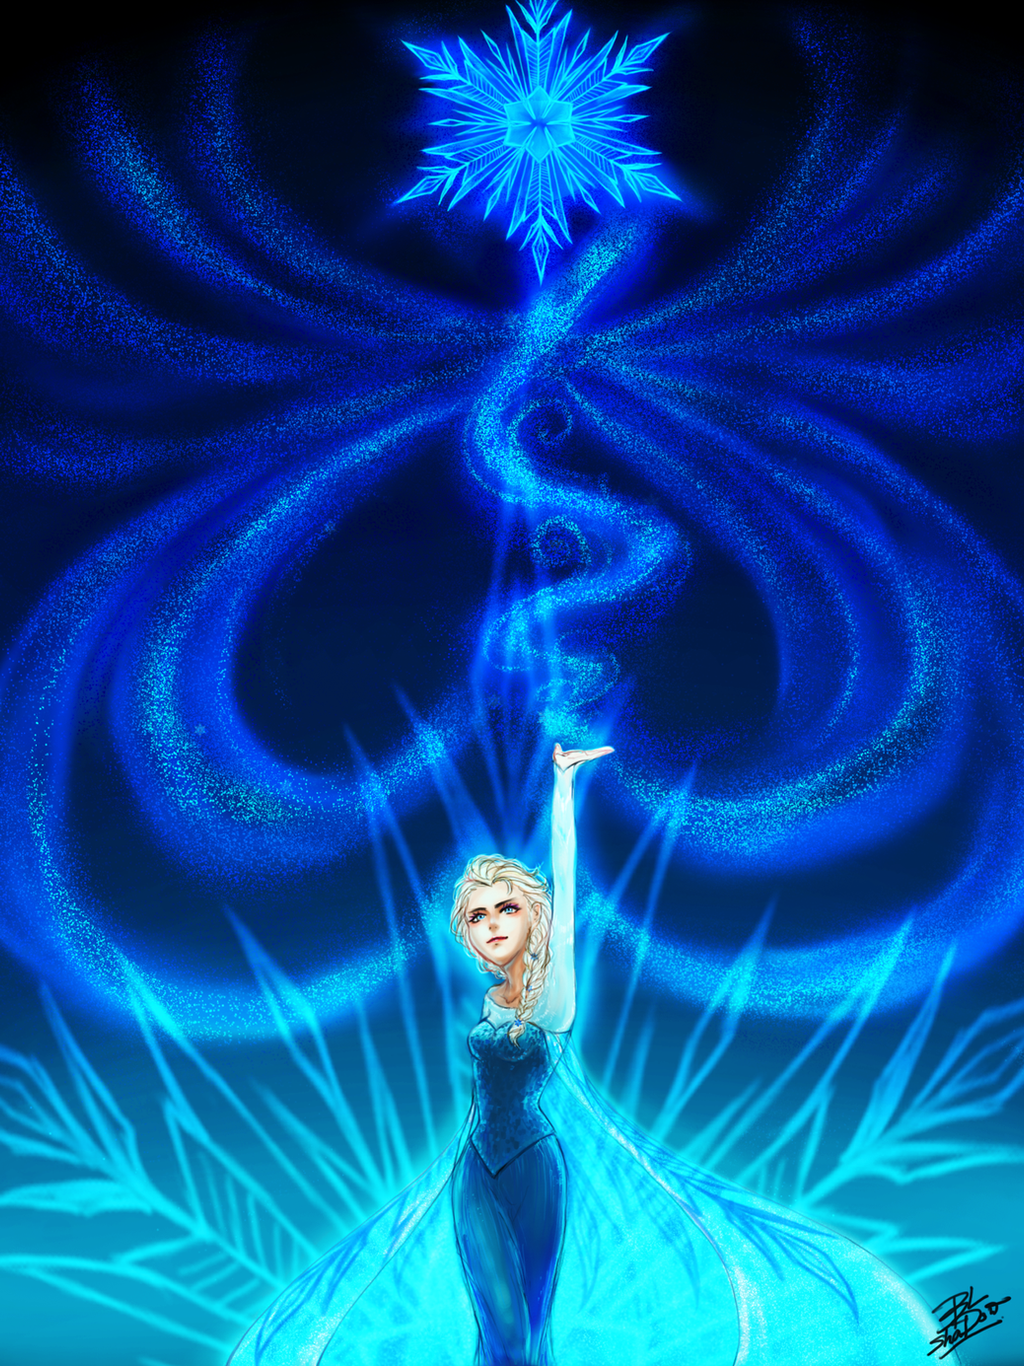 Let It Go! by palitapare